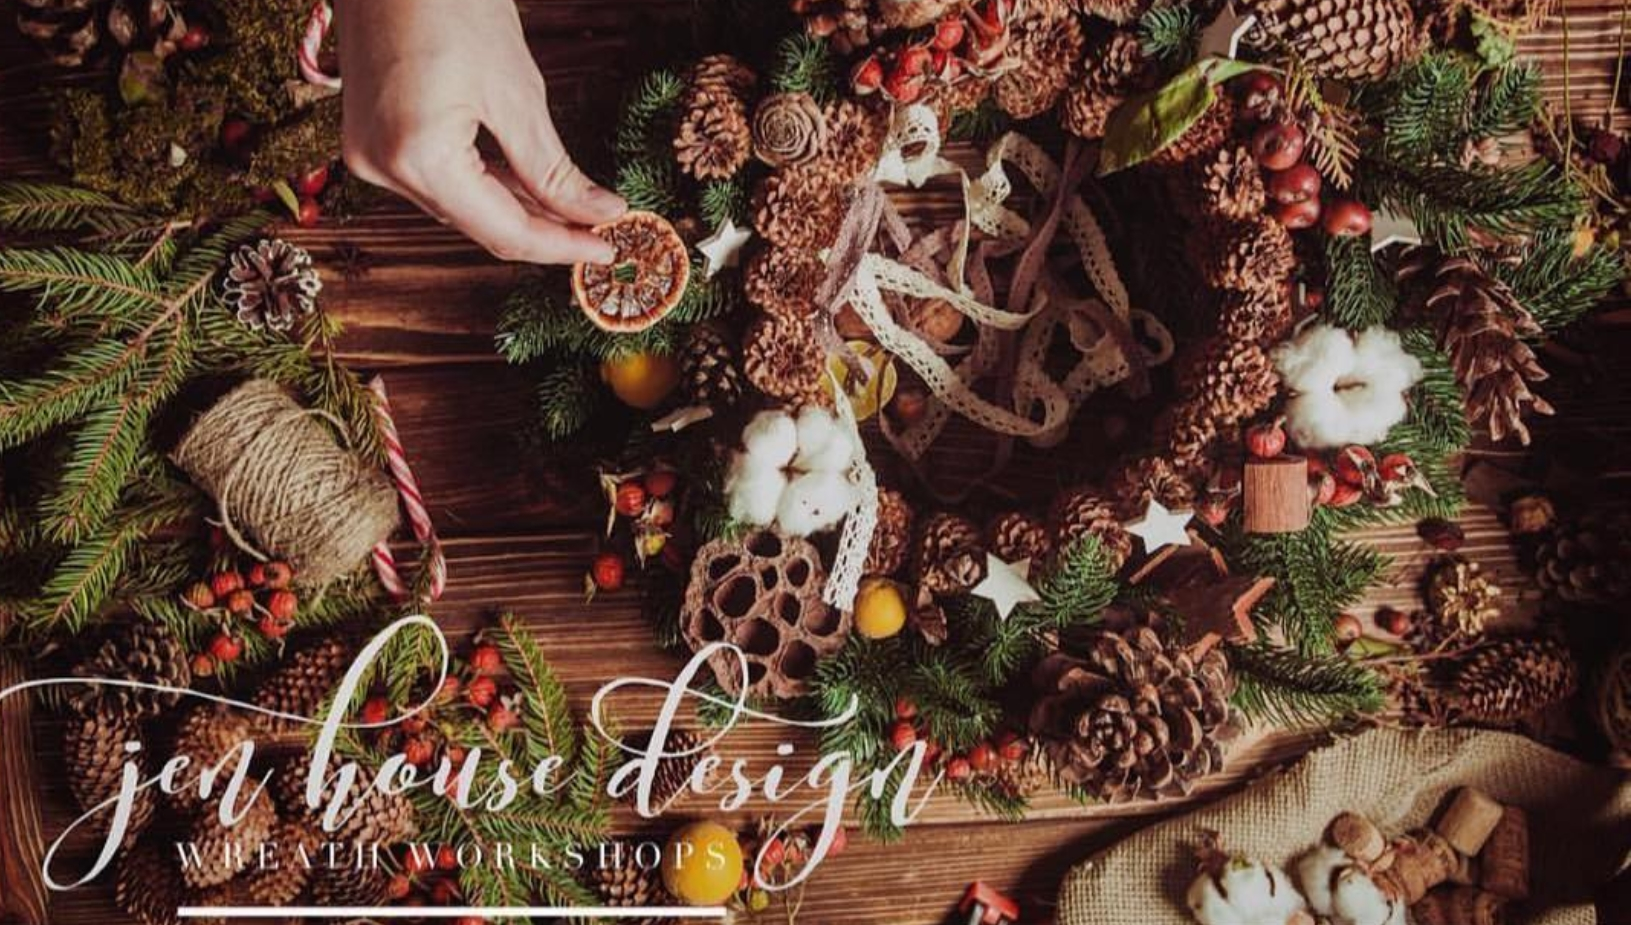 WREATH-MAKING WORKSHOP SCHEDULED IN PLYMOUTH